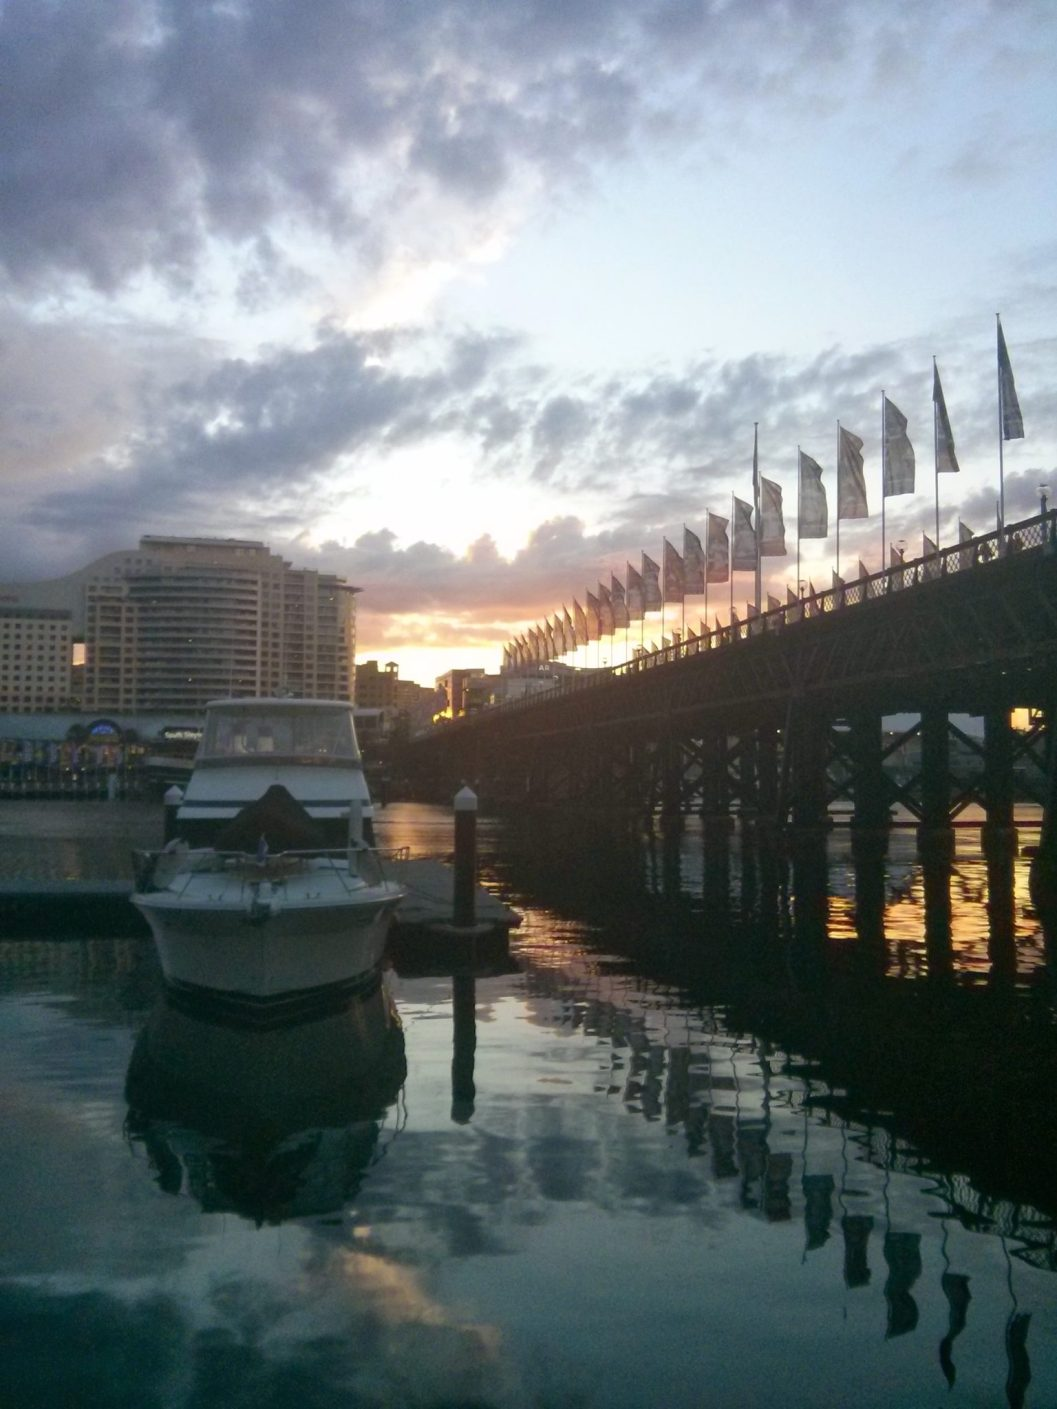 Pyrmont Bridge a Darling Harbour, Sydney.